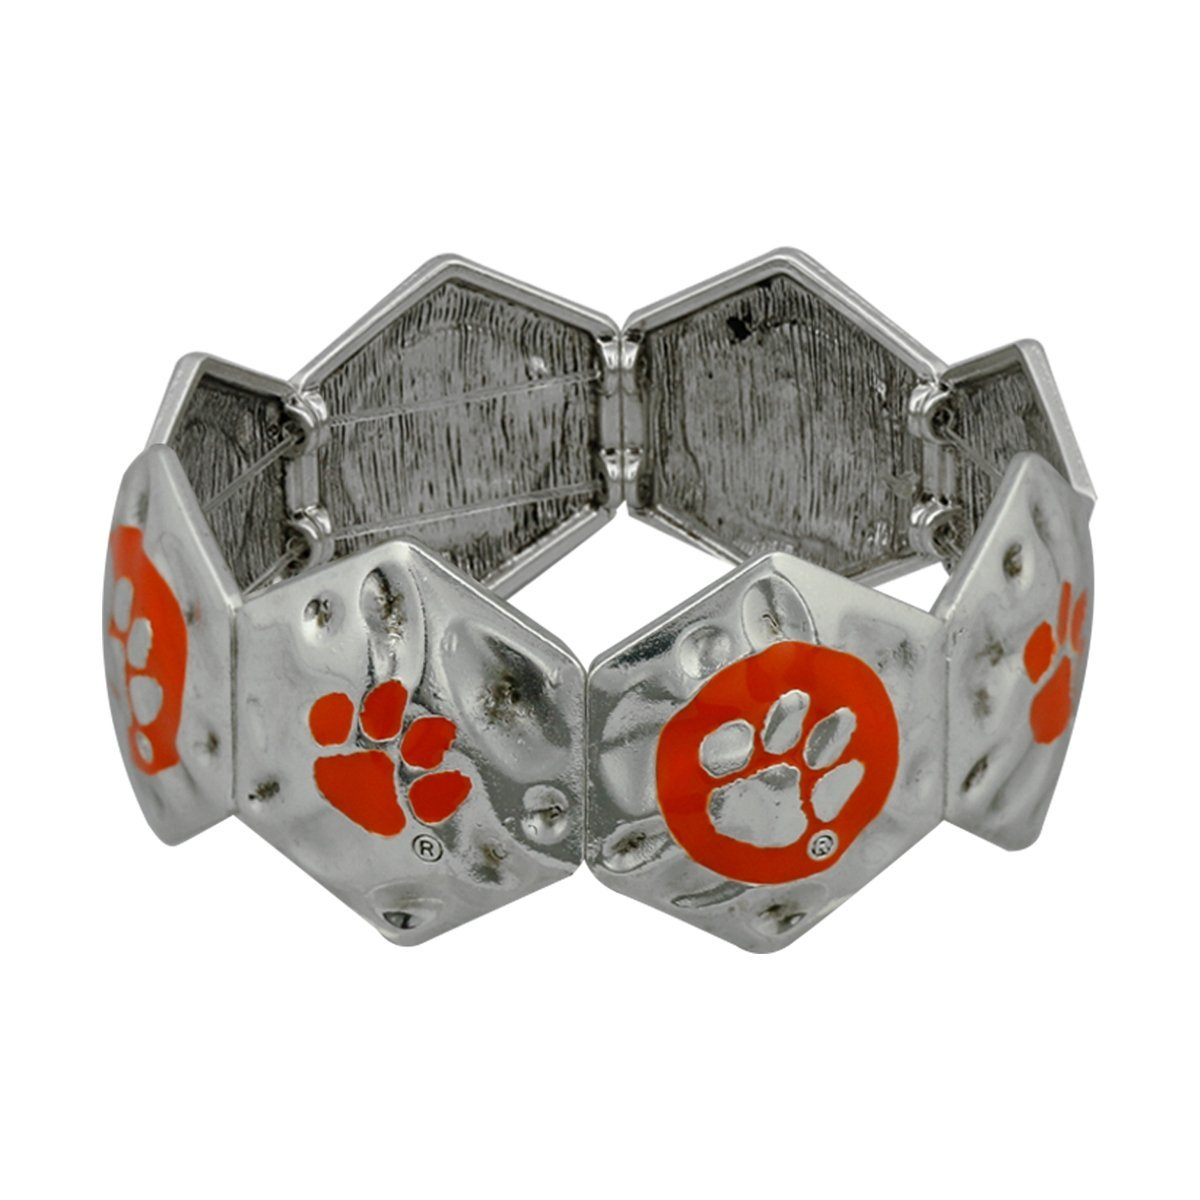 Clemson Hammered Metal Bracelet with Paw Prints - Mr. Knickerbocker